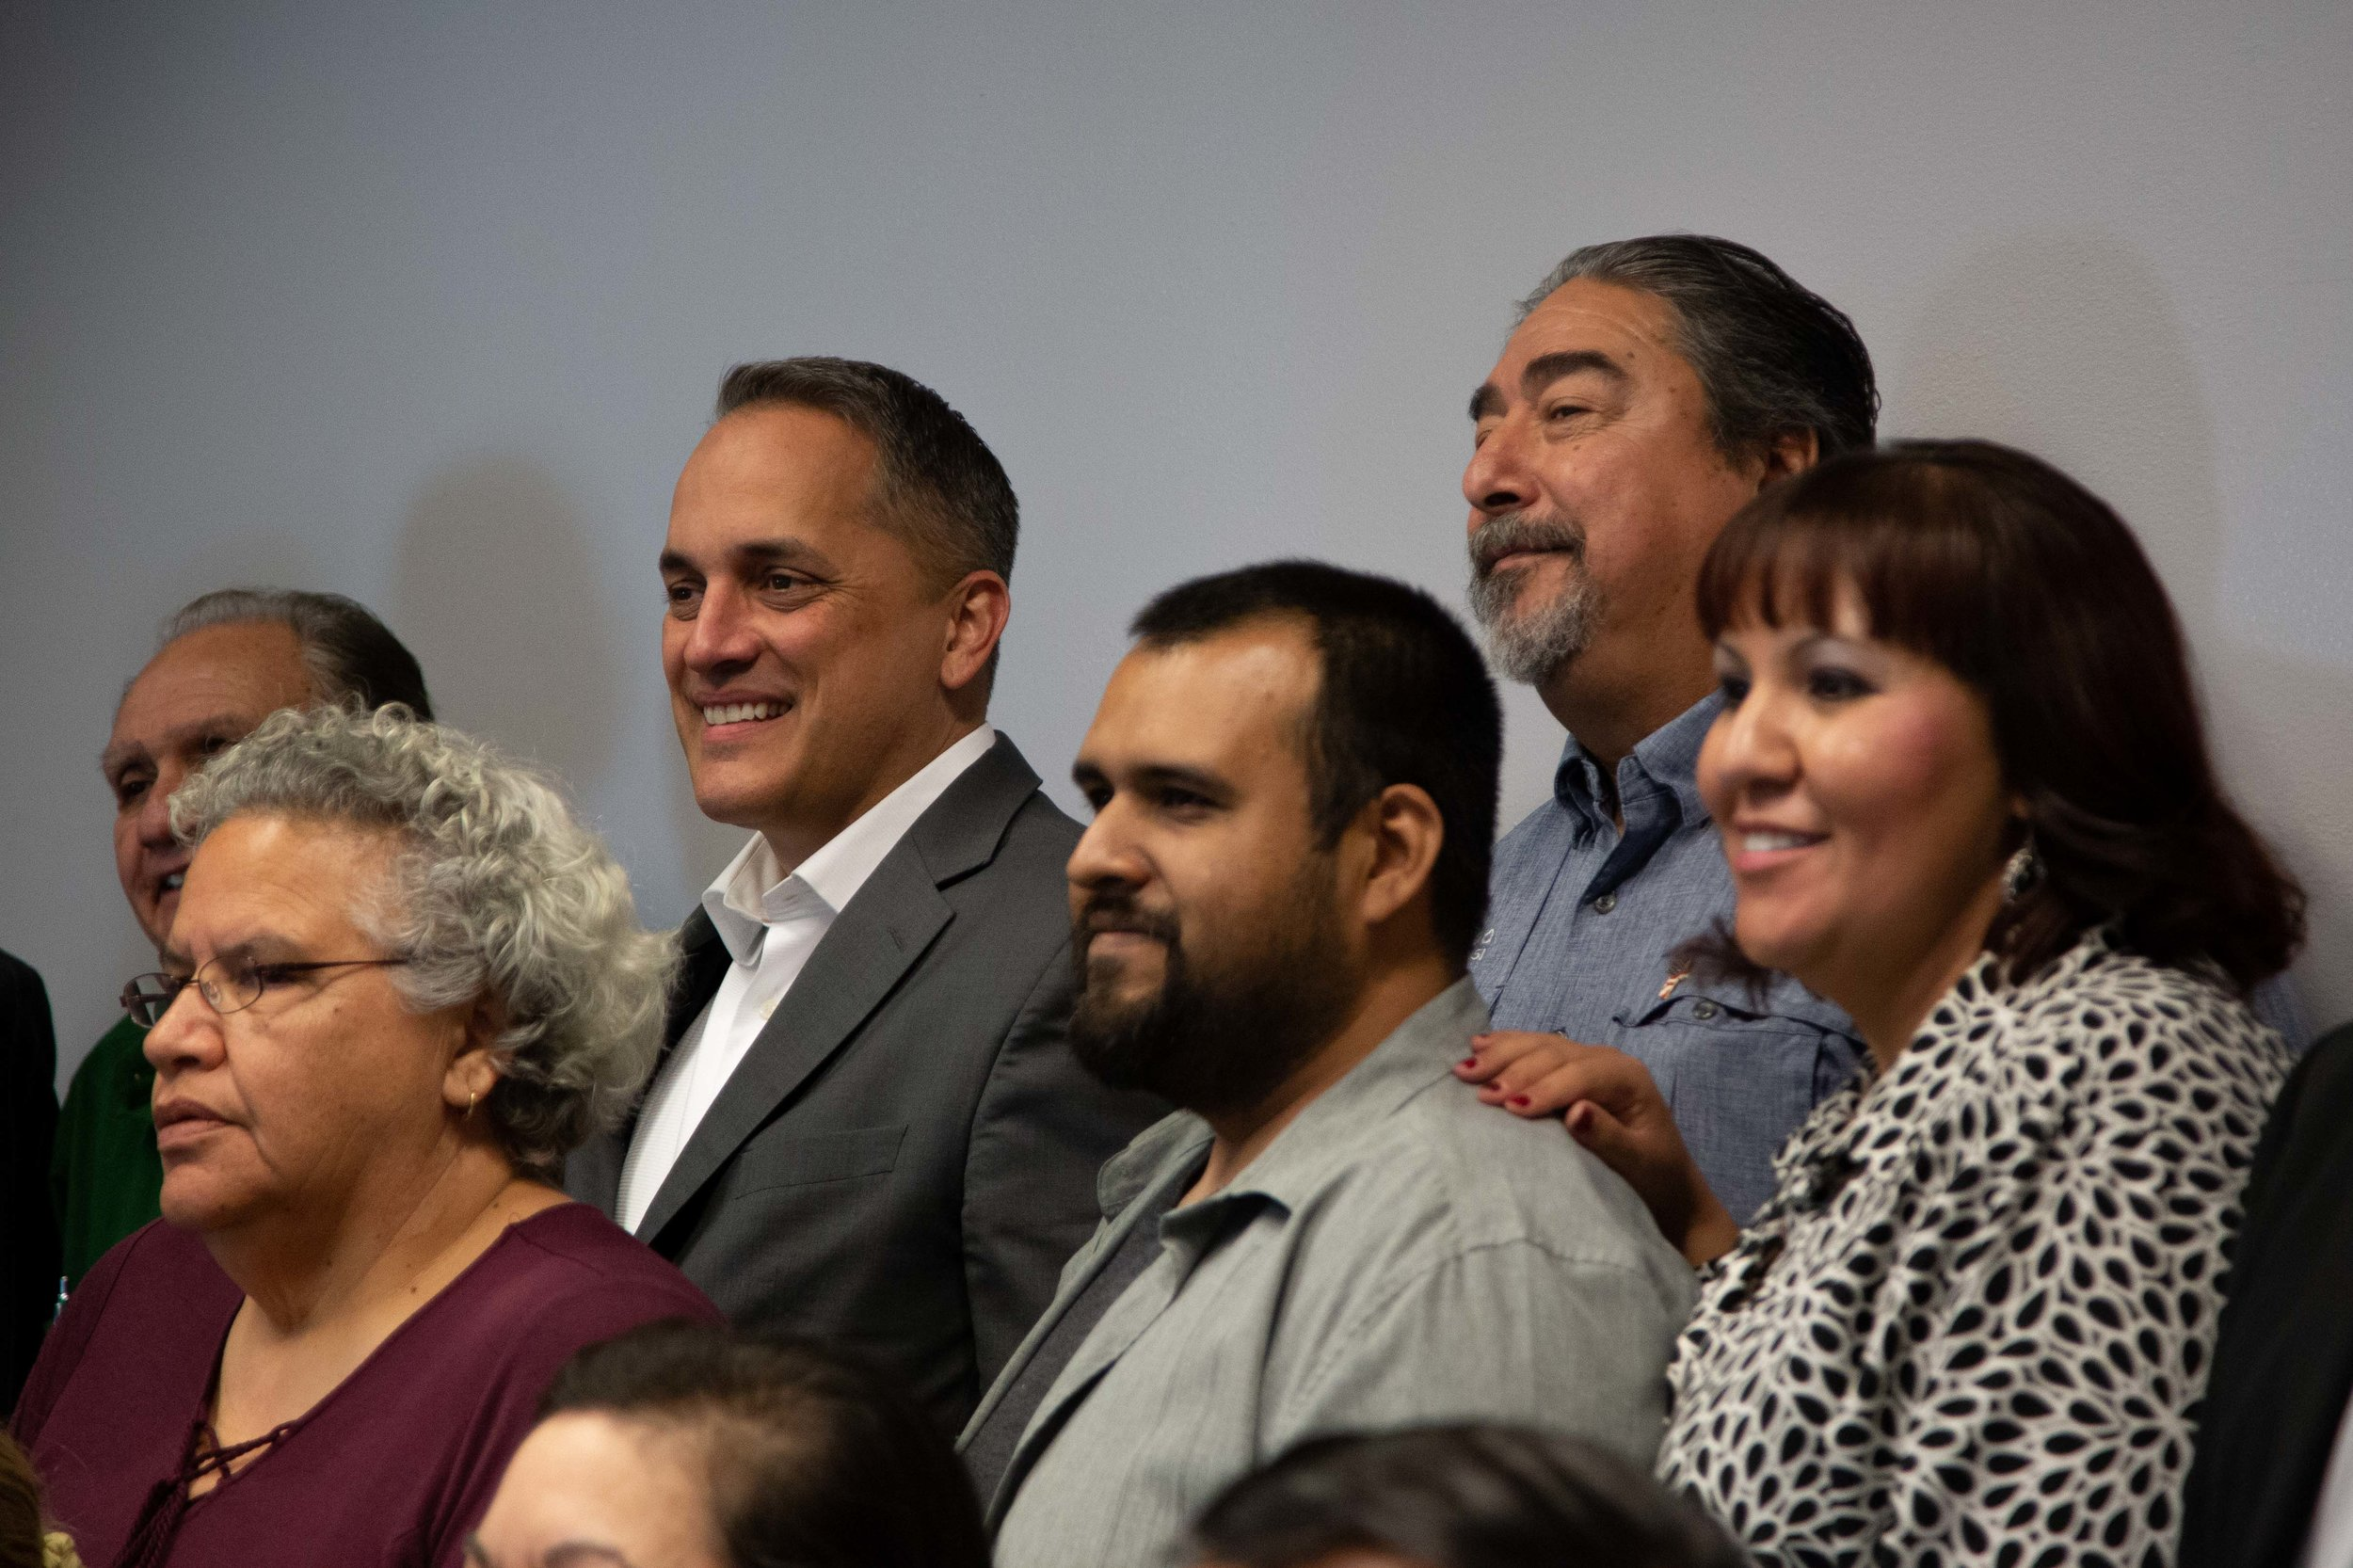 Brockhouse poses for a picture after the forum. (Photo Credit:  GA Media Productions )